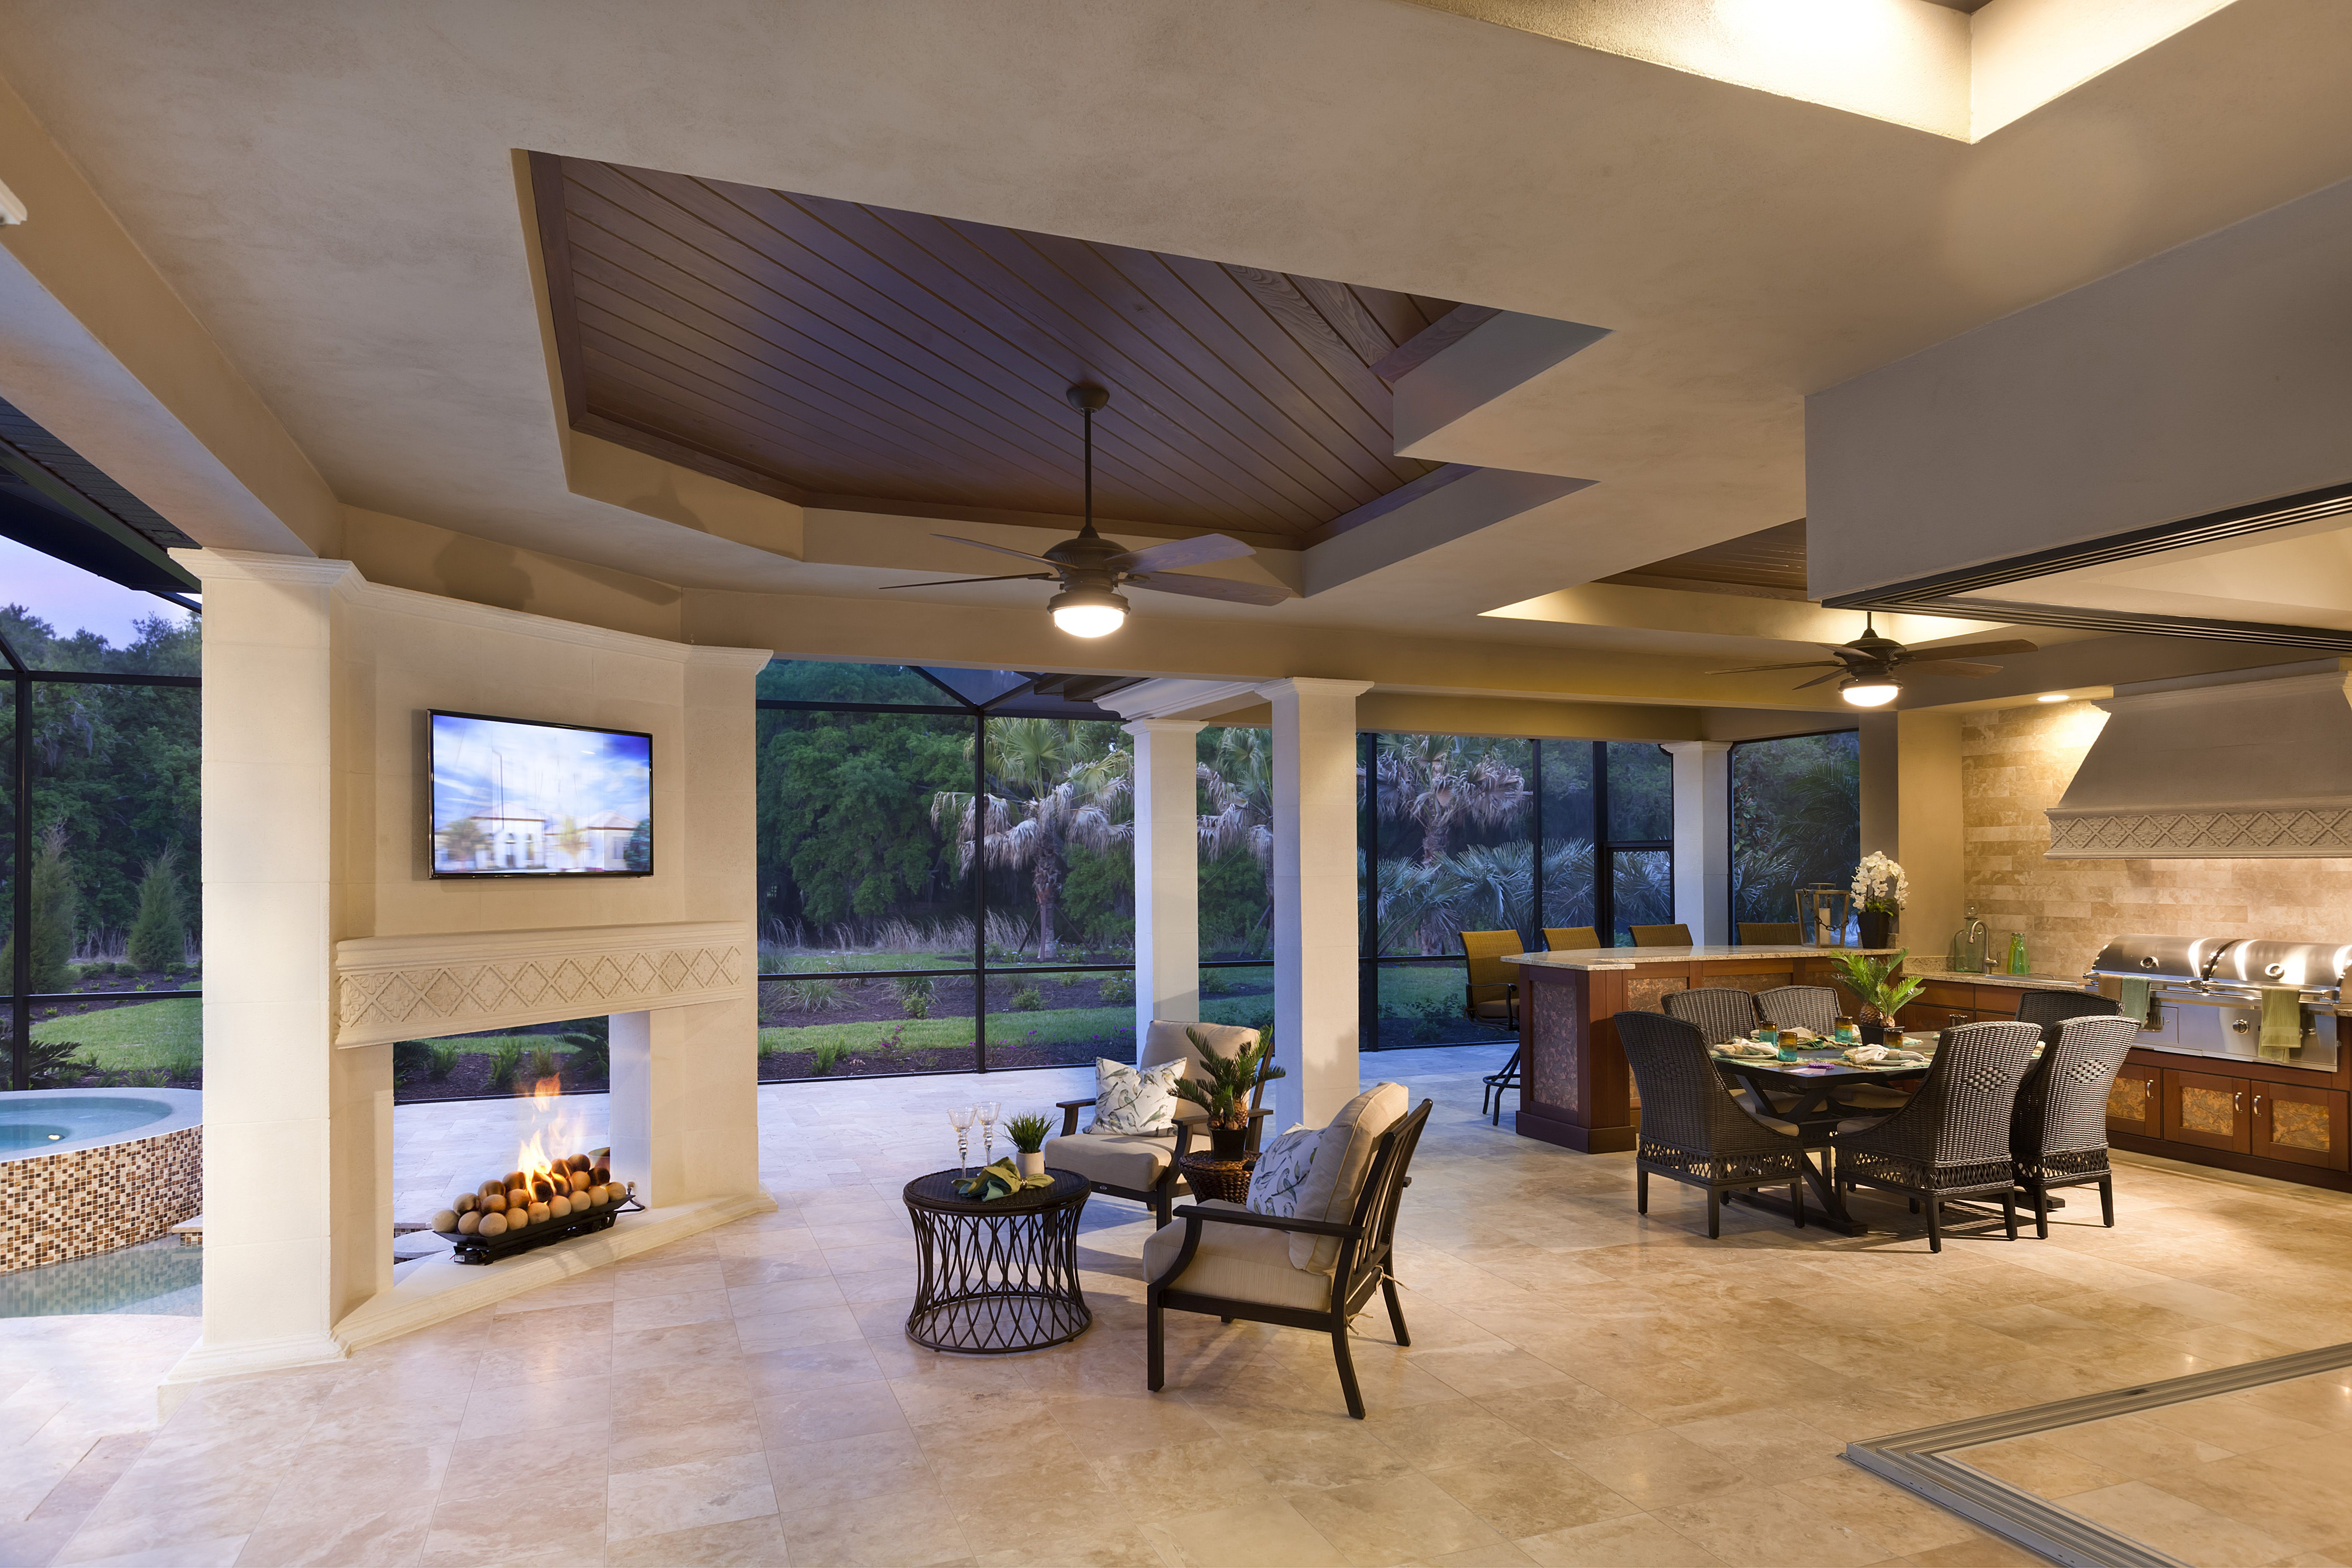 Lee Wetherington Homes Outdoor Living At The Verona Model At The Concession Theconcessio Luxury Outdoor Kitchen Outdoor Kitchen Cabinets Outdoor Living Areas